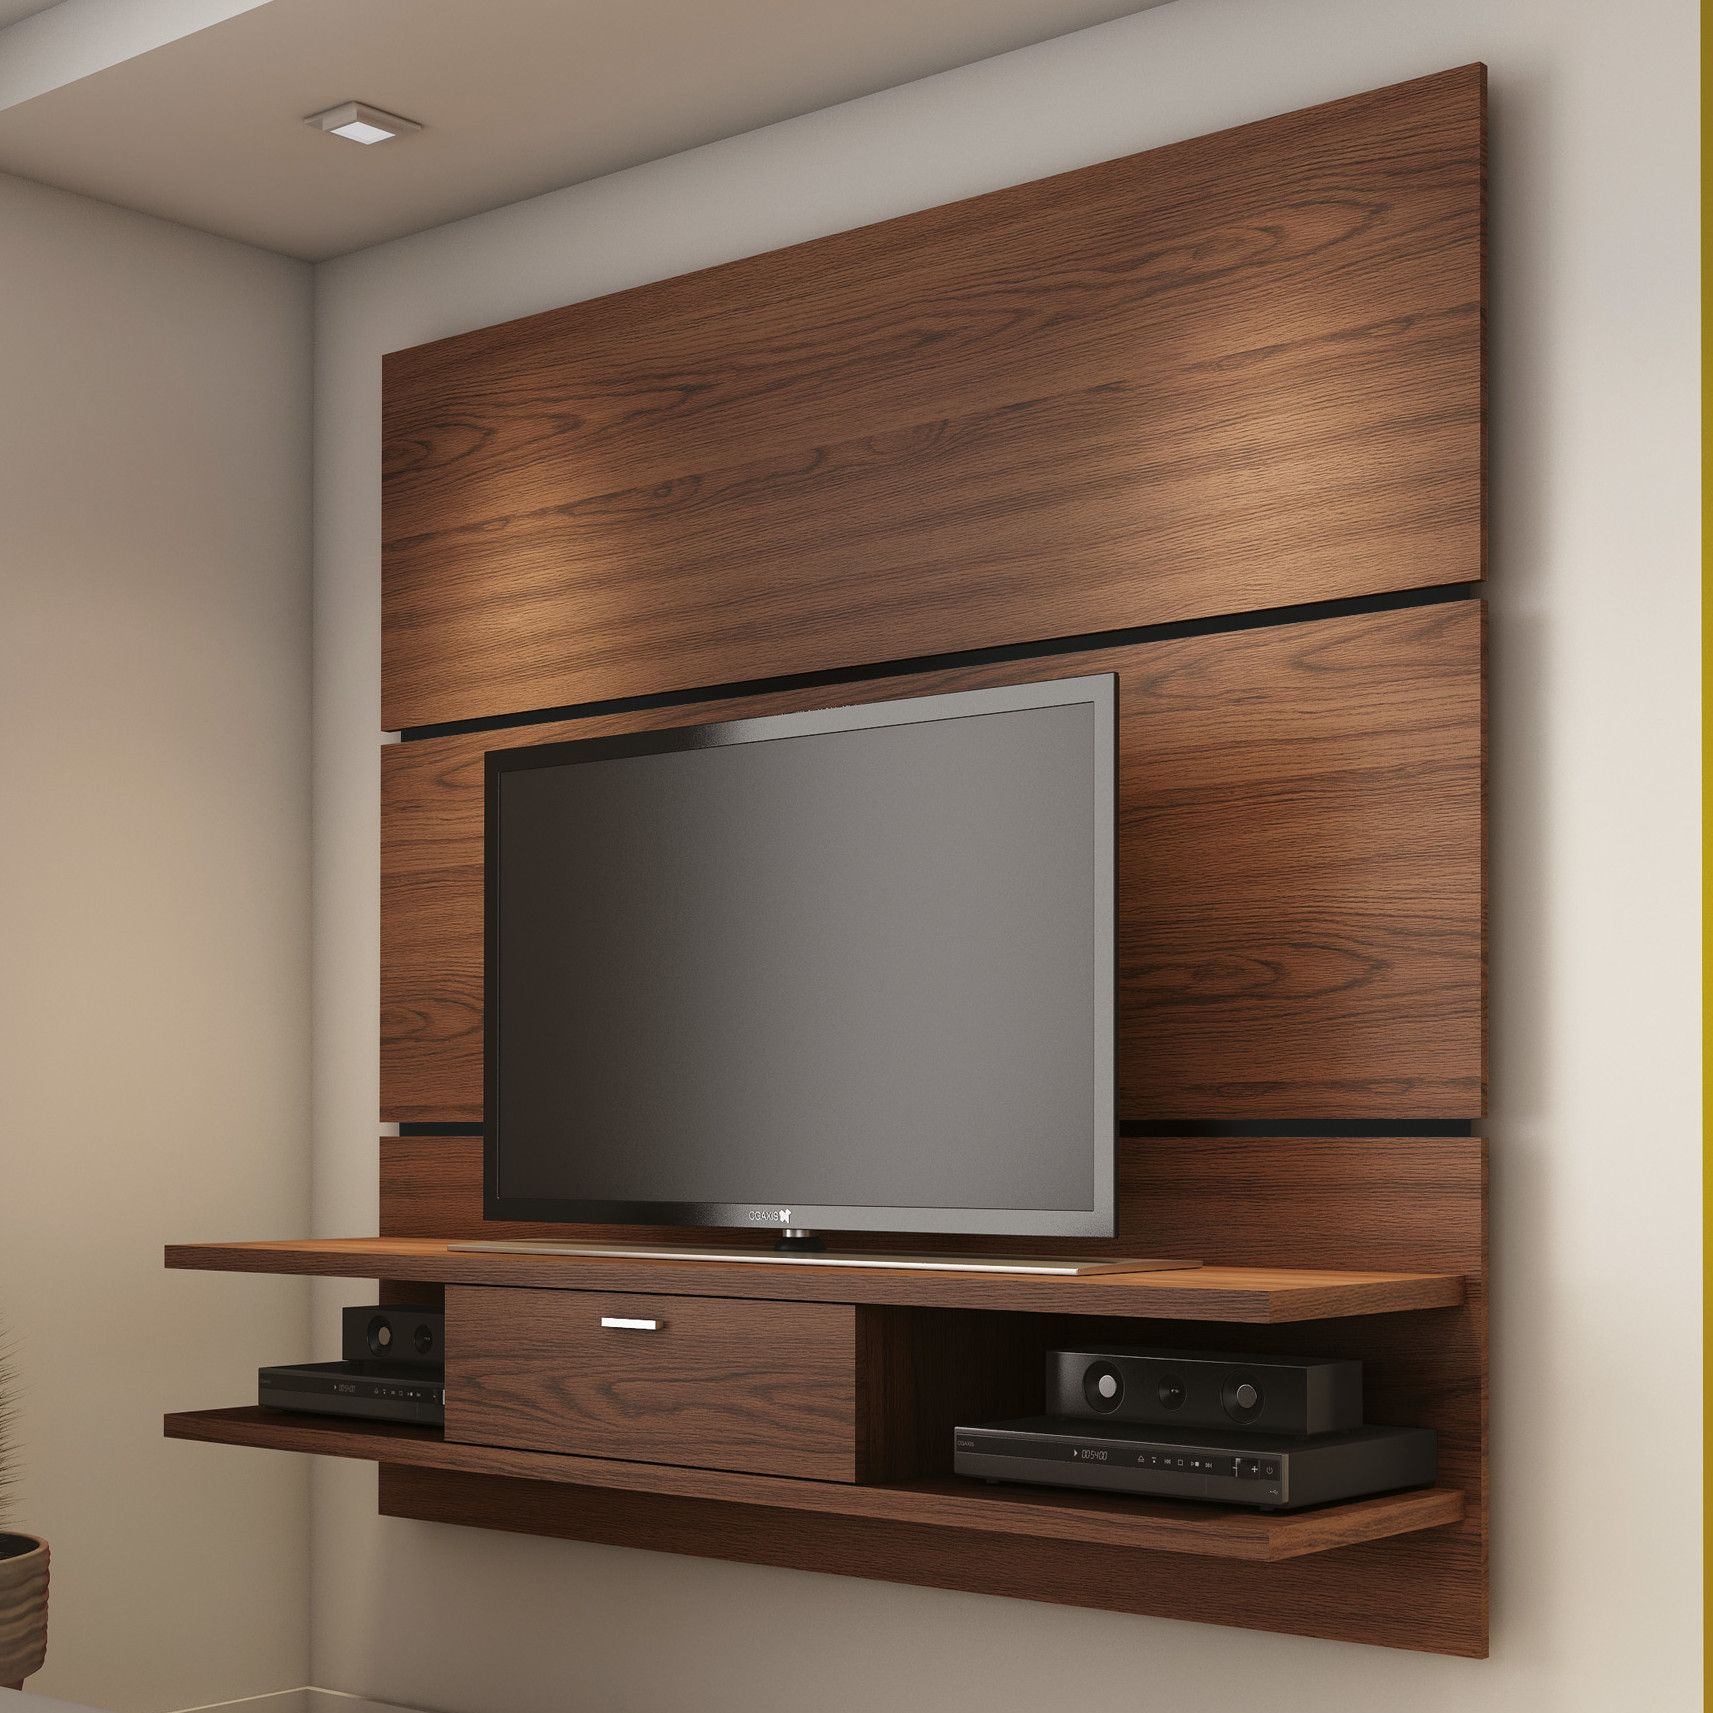 Small Bedroom Tv Unit Wooden Wall Mounted Tv Stand For Bedroom In Stylish Design Of Wall Mount Tv Stand Tv In